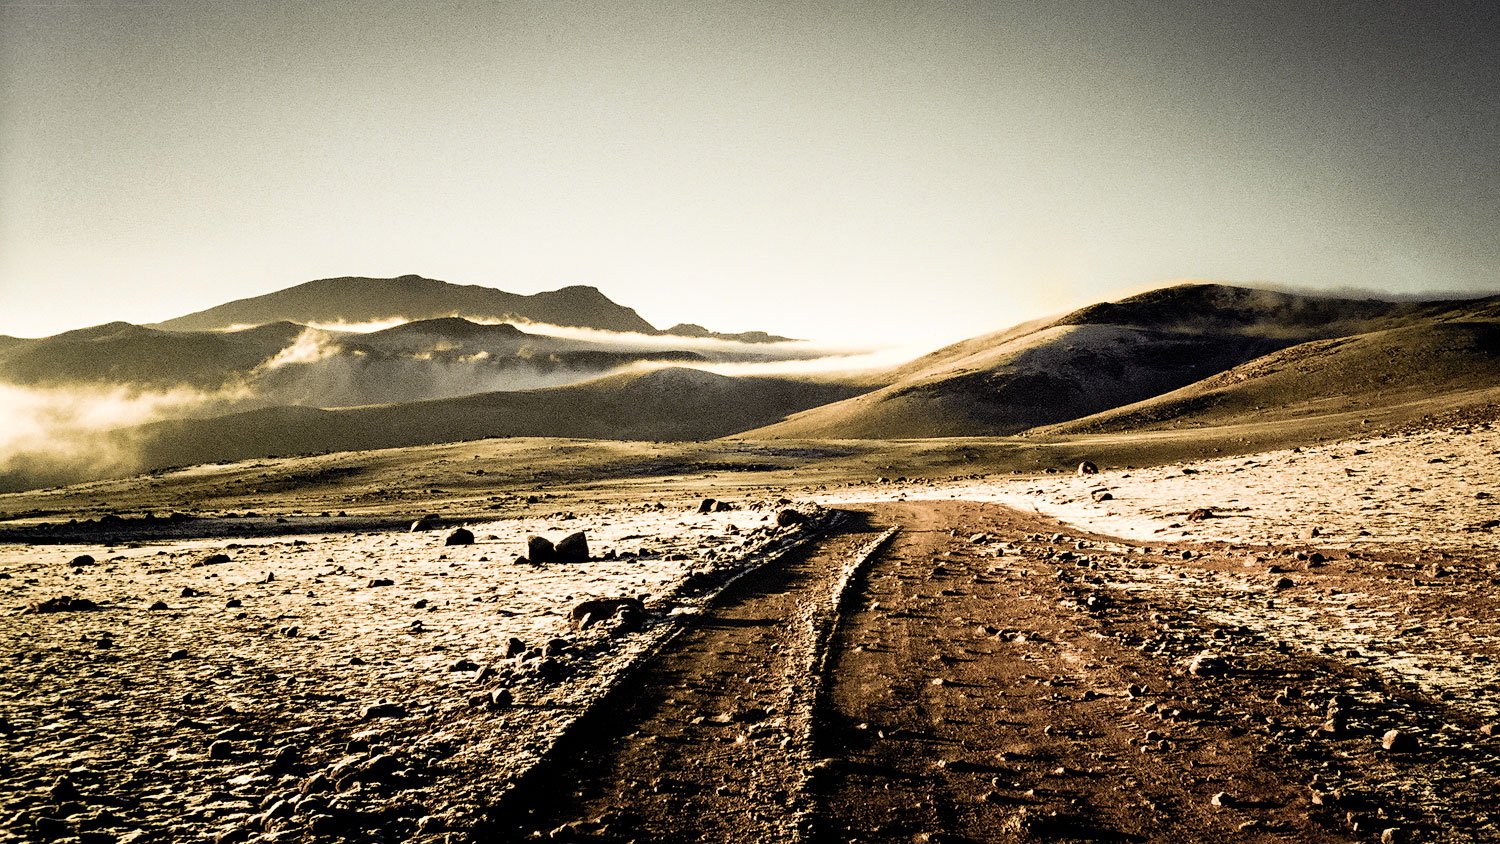 On the Bolivian altiplano, 1999.